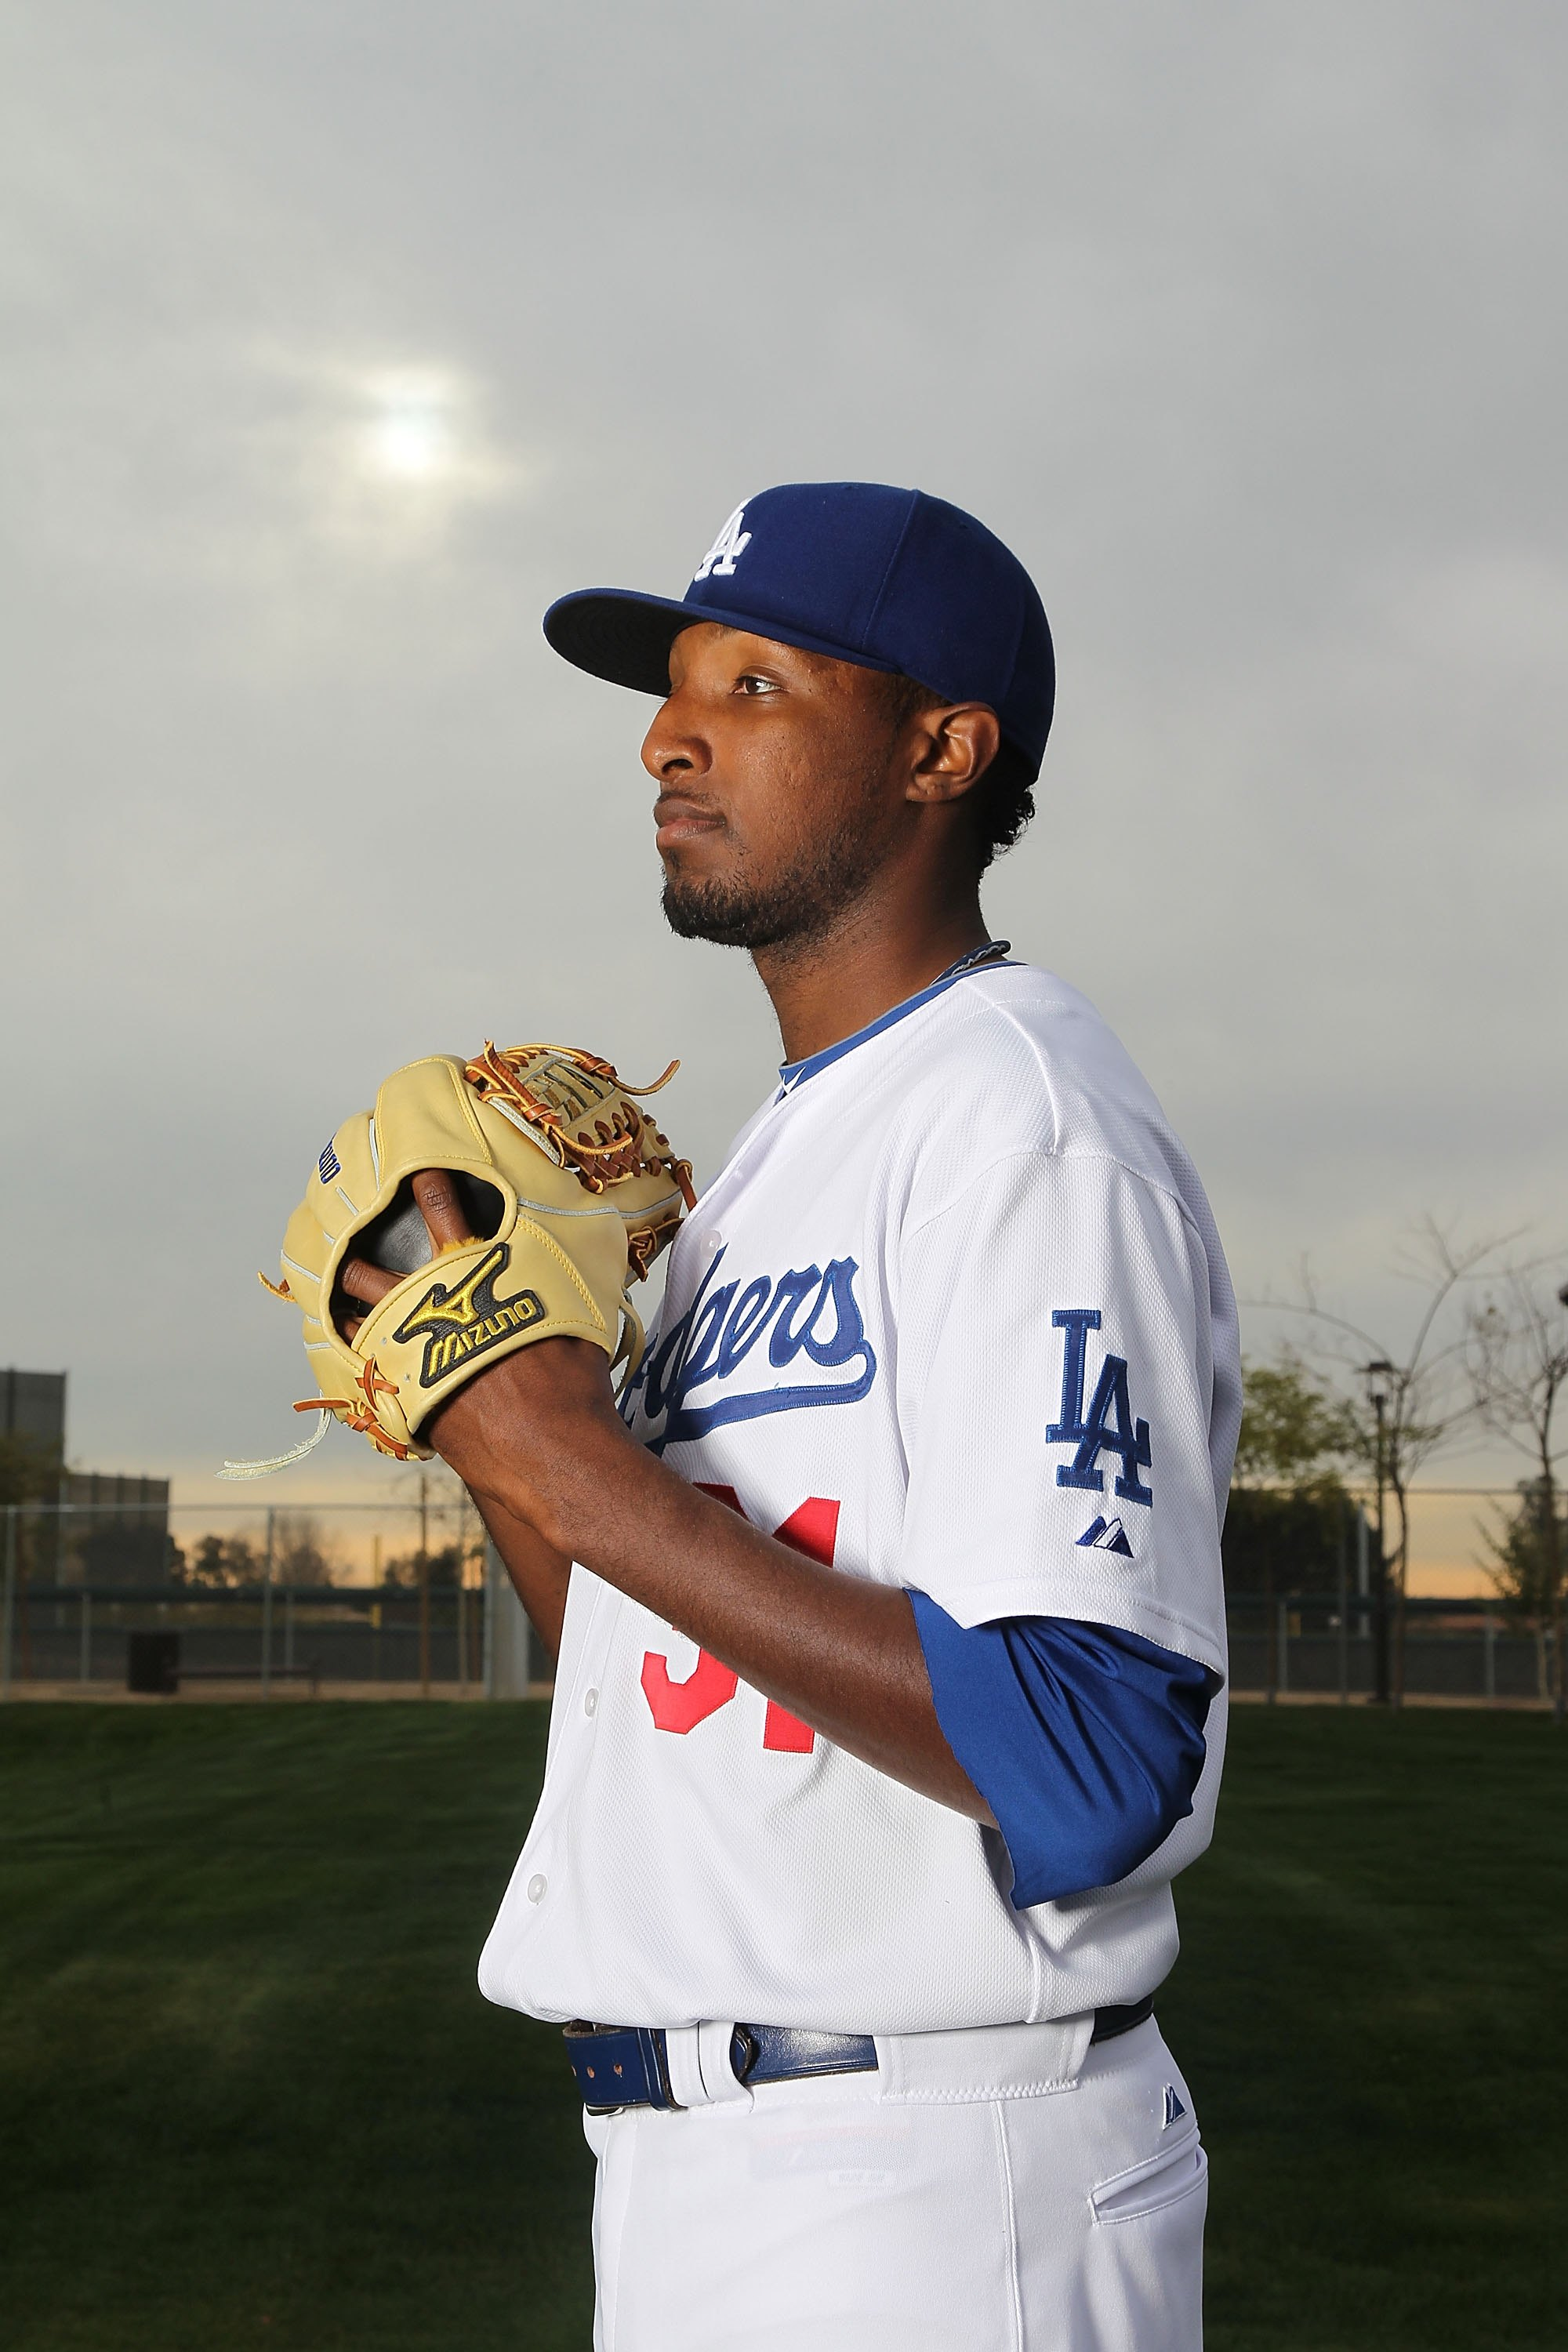 GLENDALE, AZ - FEBRUARY 27:  James McDonald of the Los Angeles Dodgers poses during media photo day on February 27, 2010 at the Ballpark at Camelback Ranch, in Glendale, Arizona.  (Photo by Jed Jacobsohn/Getty Images)